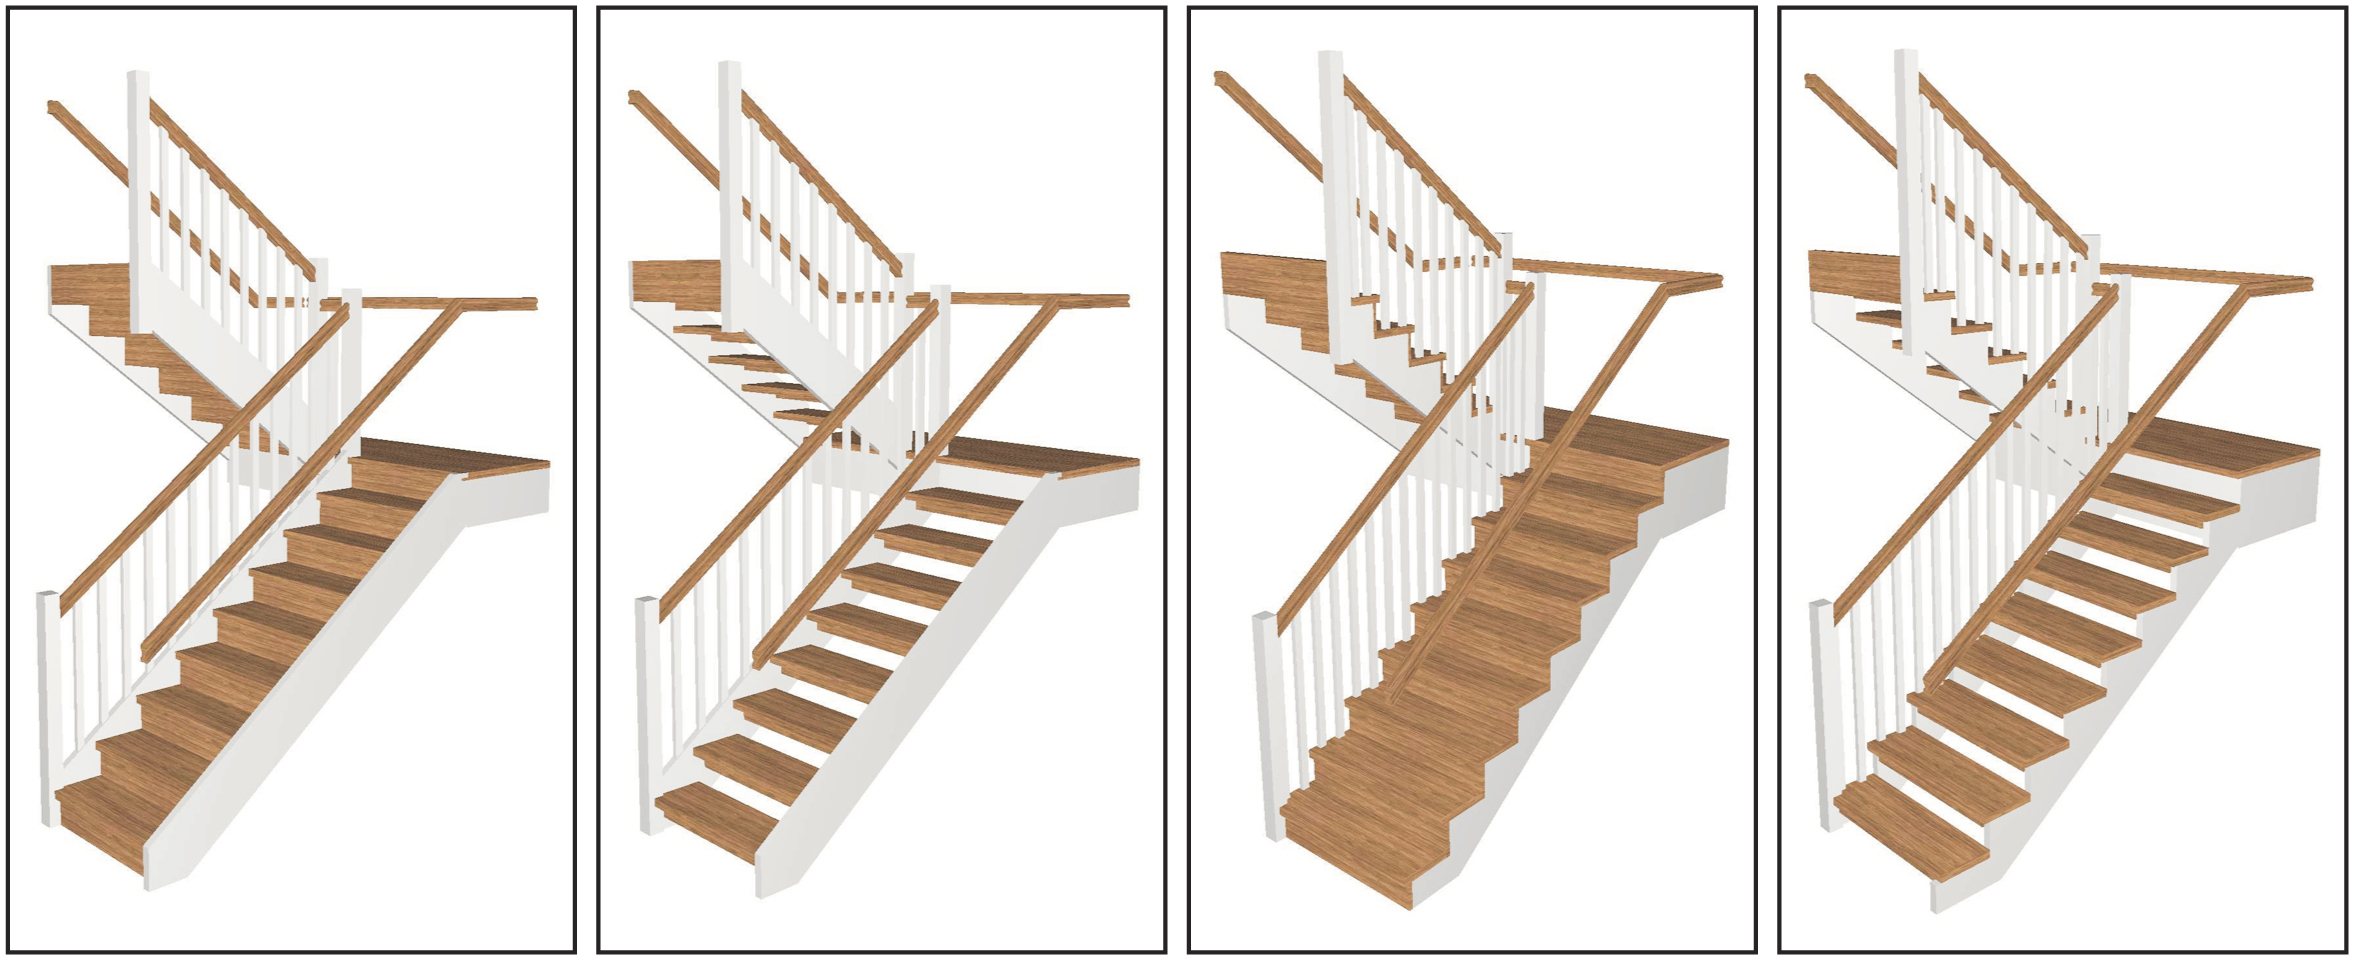 Half Turn Stairs With Landing (U Shaped Stairs)